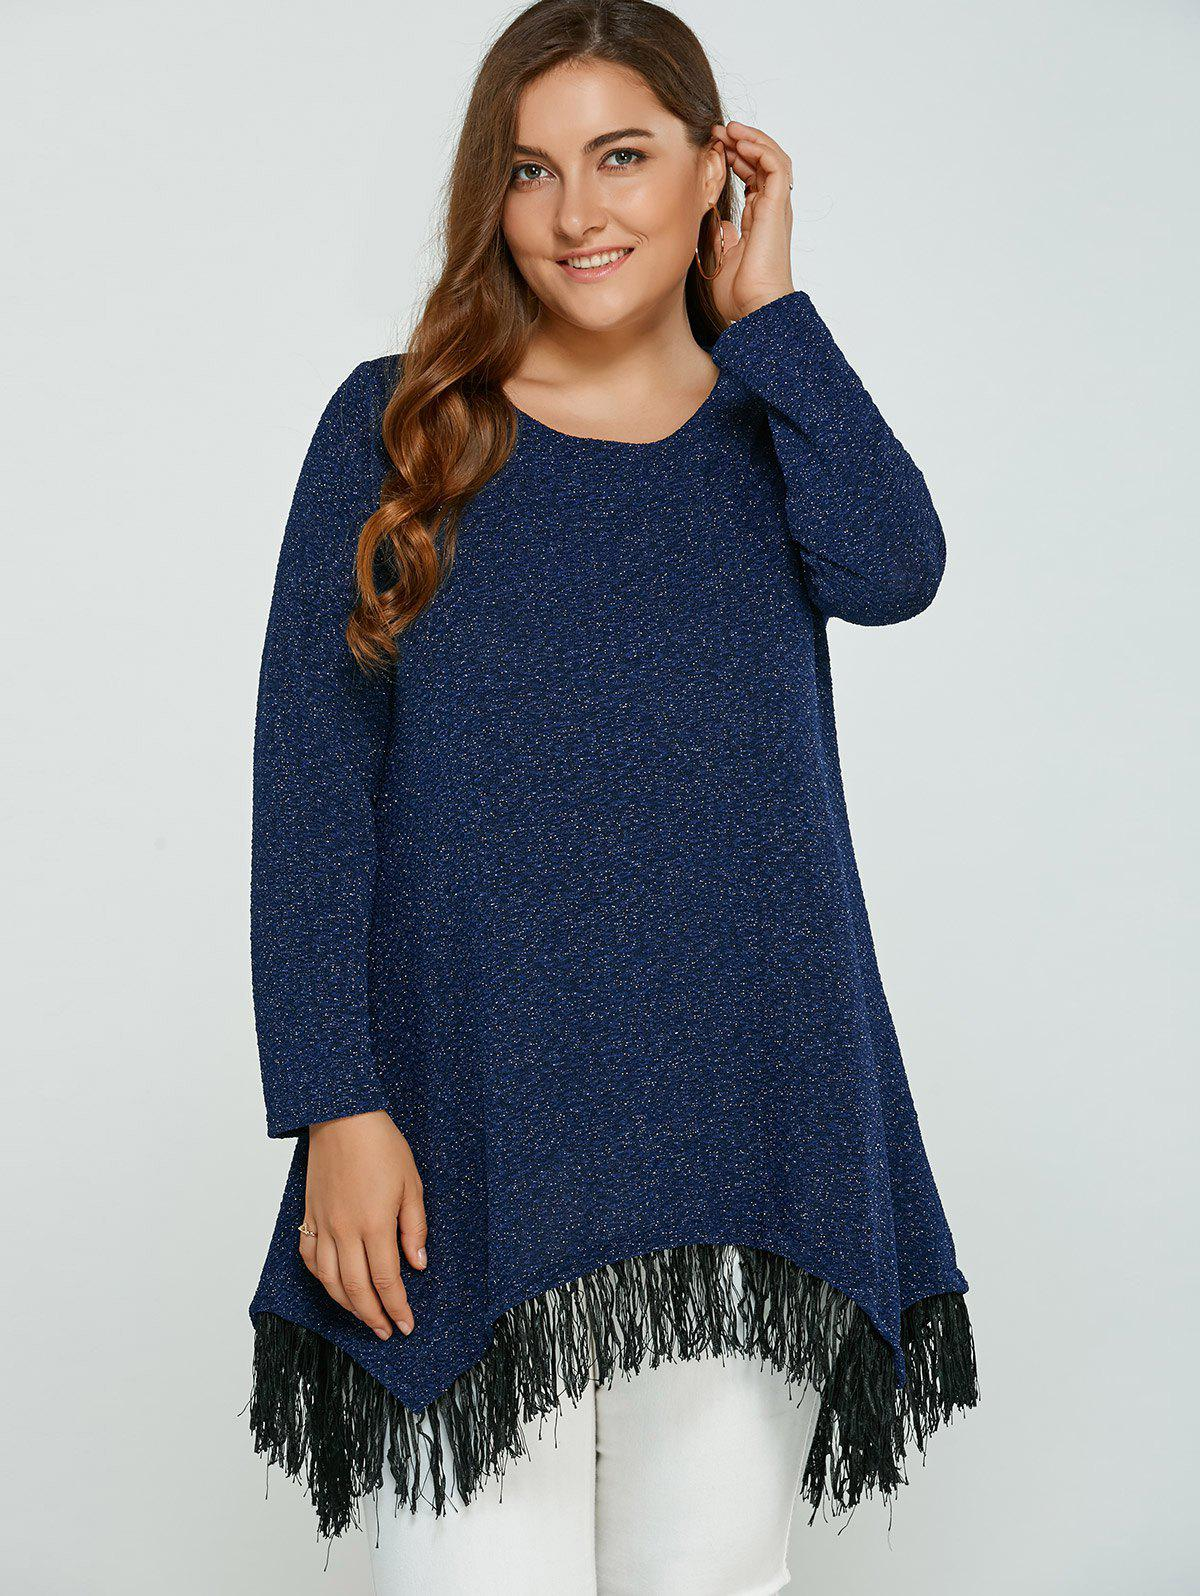 Asymmetric Gilding Fringed Blouse - BLUE 4XL